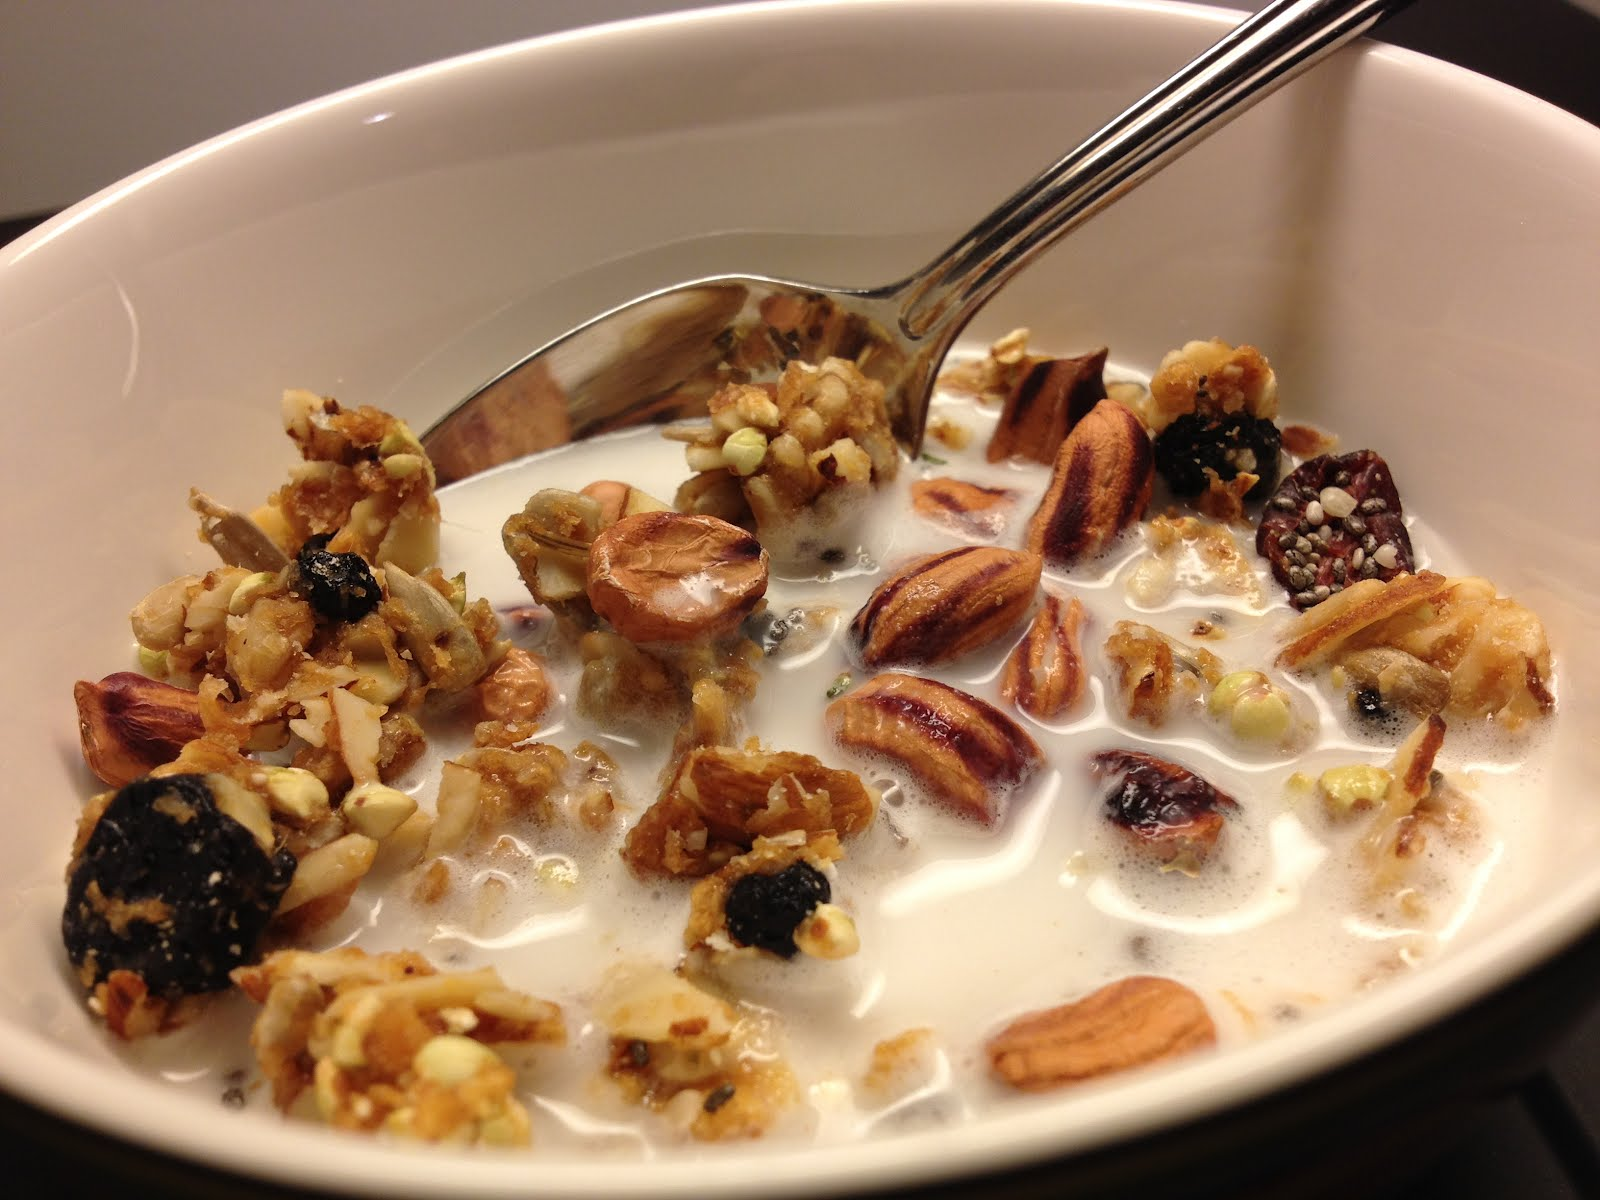 Image result for almond milk in cereal